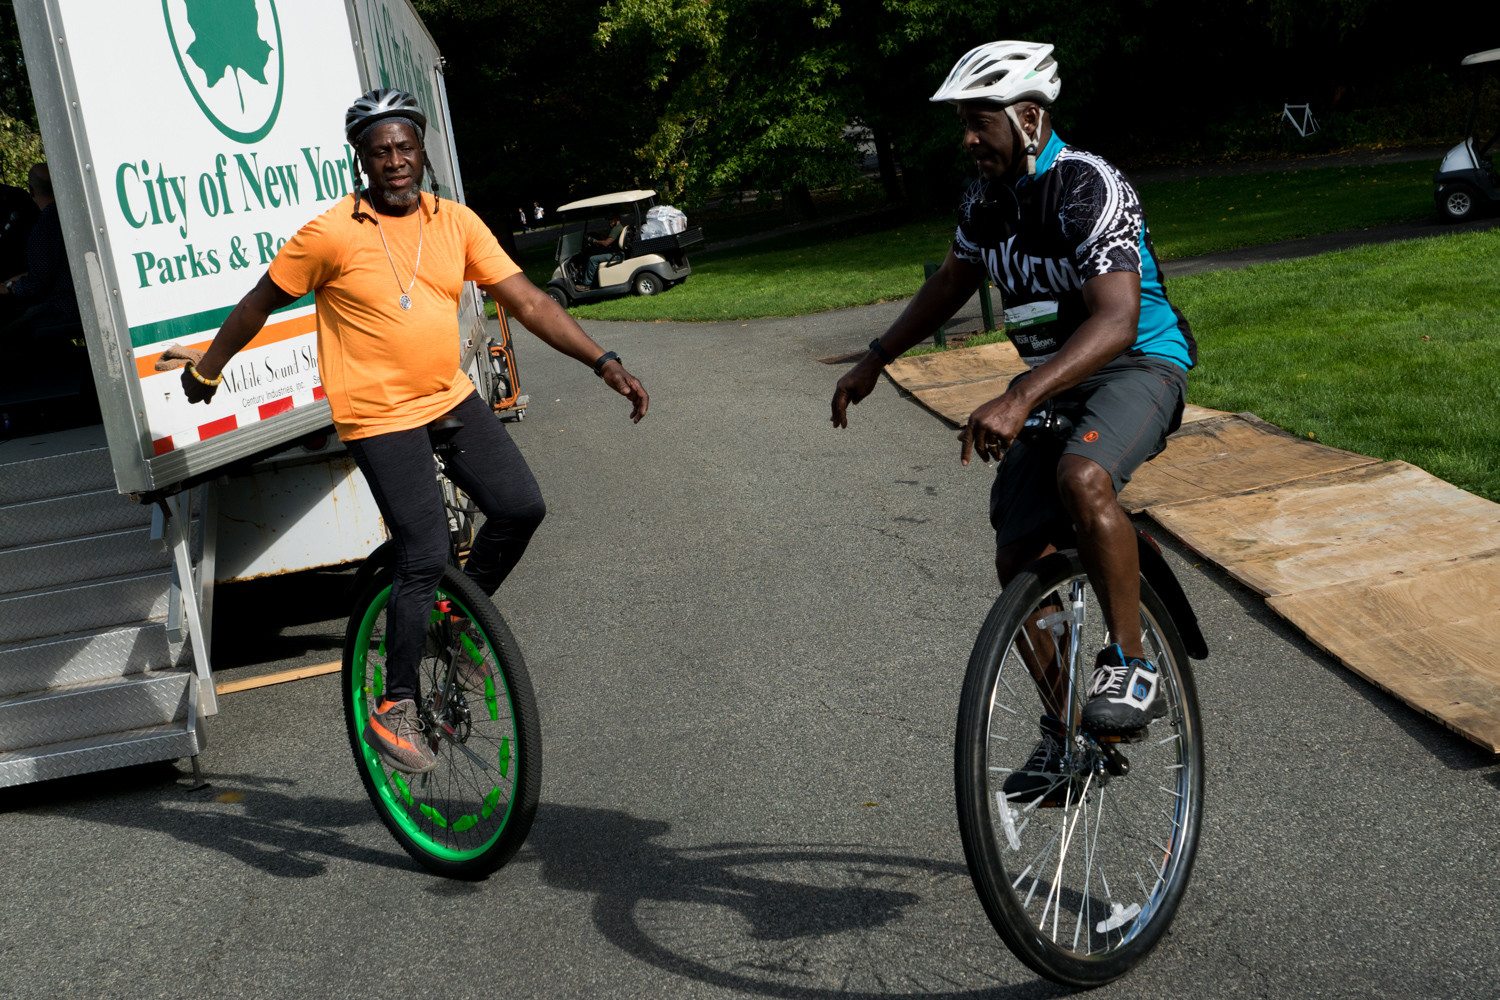 Ken Springle, right, and Abdul Wright ride their unicycles at the end of the Tour de Bronx. Springle and Wright are members of the New York Unicycle Club. Both Springle and Wright rode the 25-mile route.